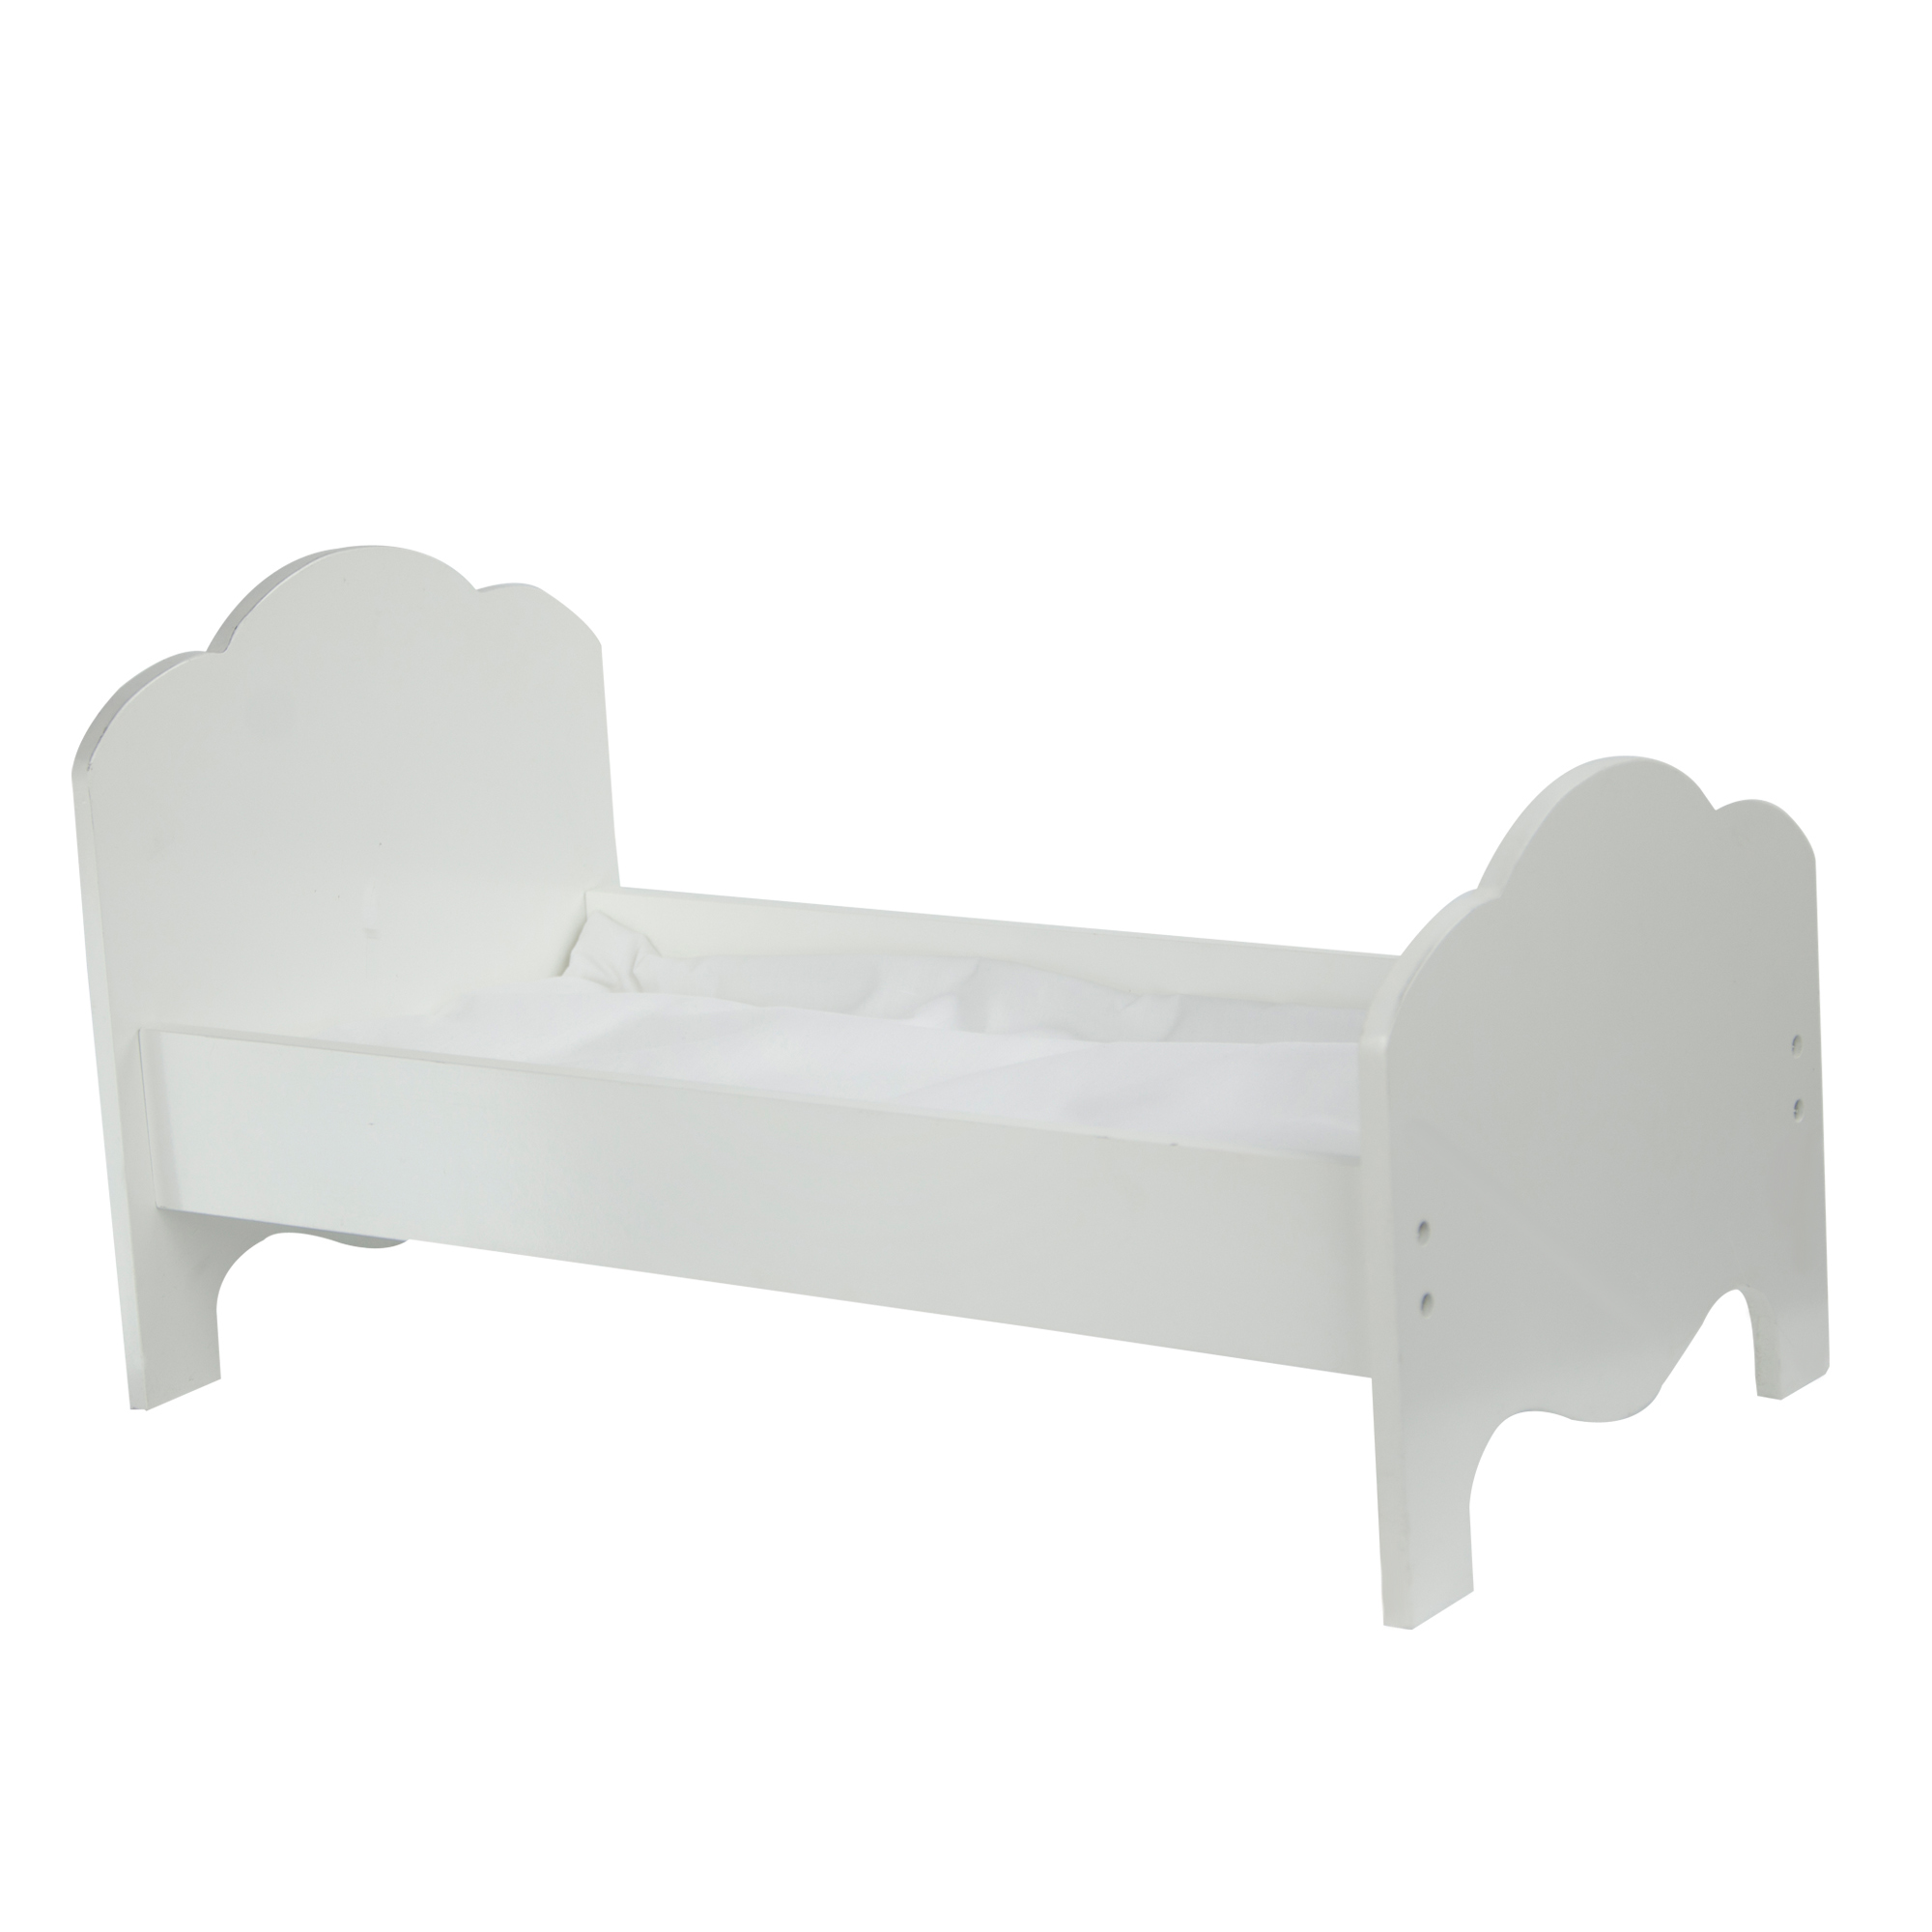 Olivia's Little World ~ Little Princess 45cm Doll Furniture - Classic Single Bed